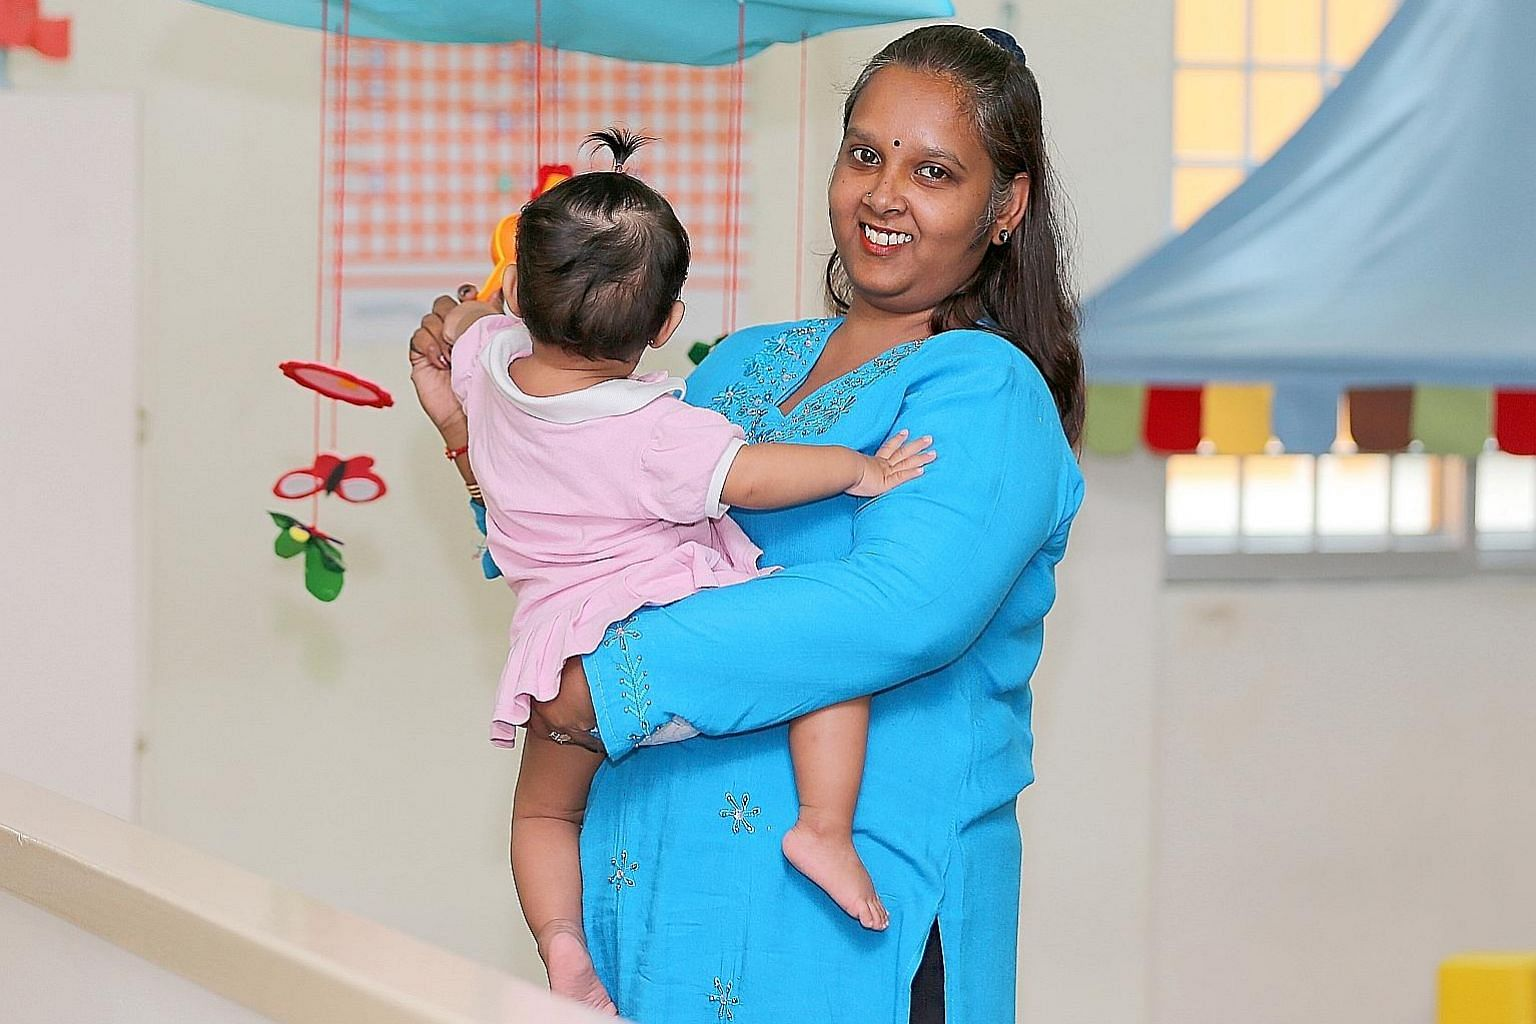 Ms Nyaneswari Paramasivam, an assistant infant care teacher at My First Skool, will be among the first batch of allied infant educarers trained. The new scheme focuses more on hands-on practice. She had been reluctant to return to the infant care sec